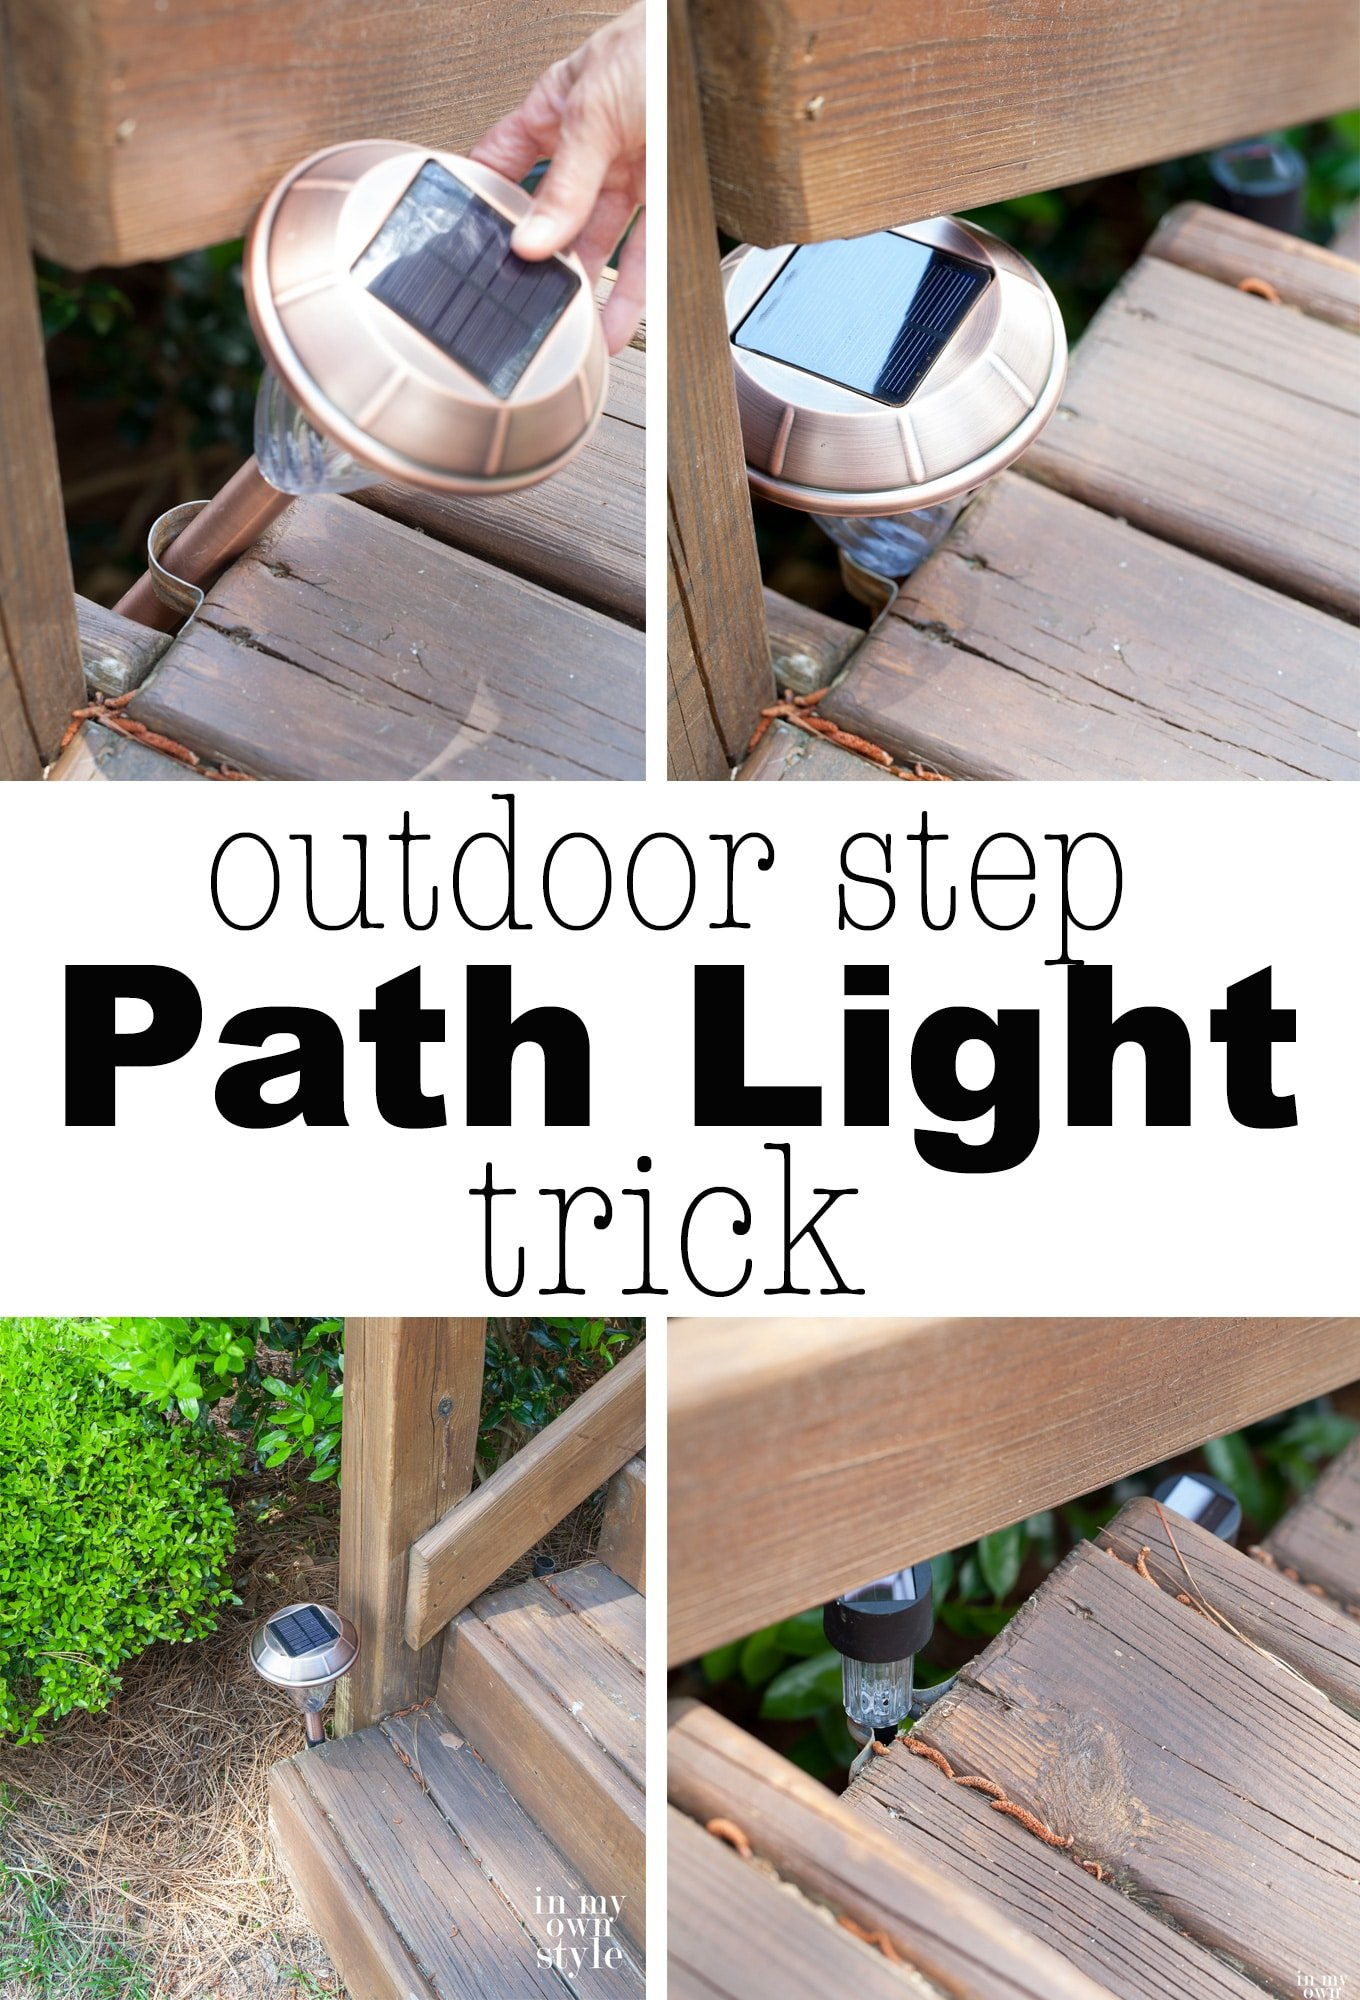 Easy and affordable outdoor lighting idea for steps. This is an ingenious way to add needed lighting to the steps on a deck that does not require an electrician. |In My Own Style